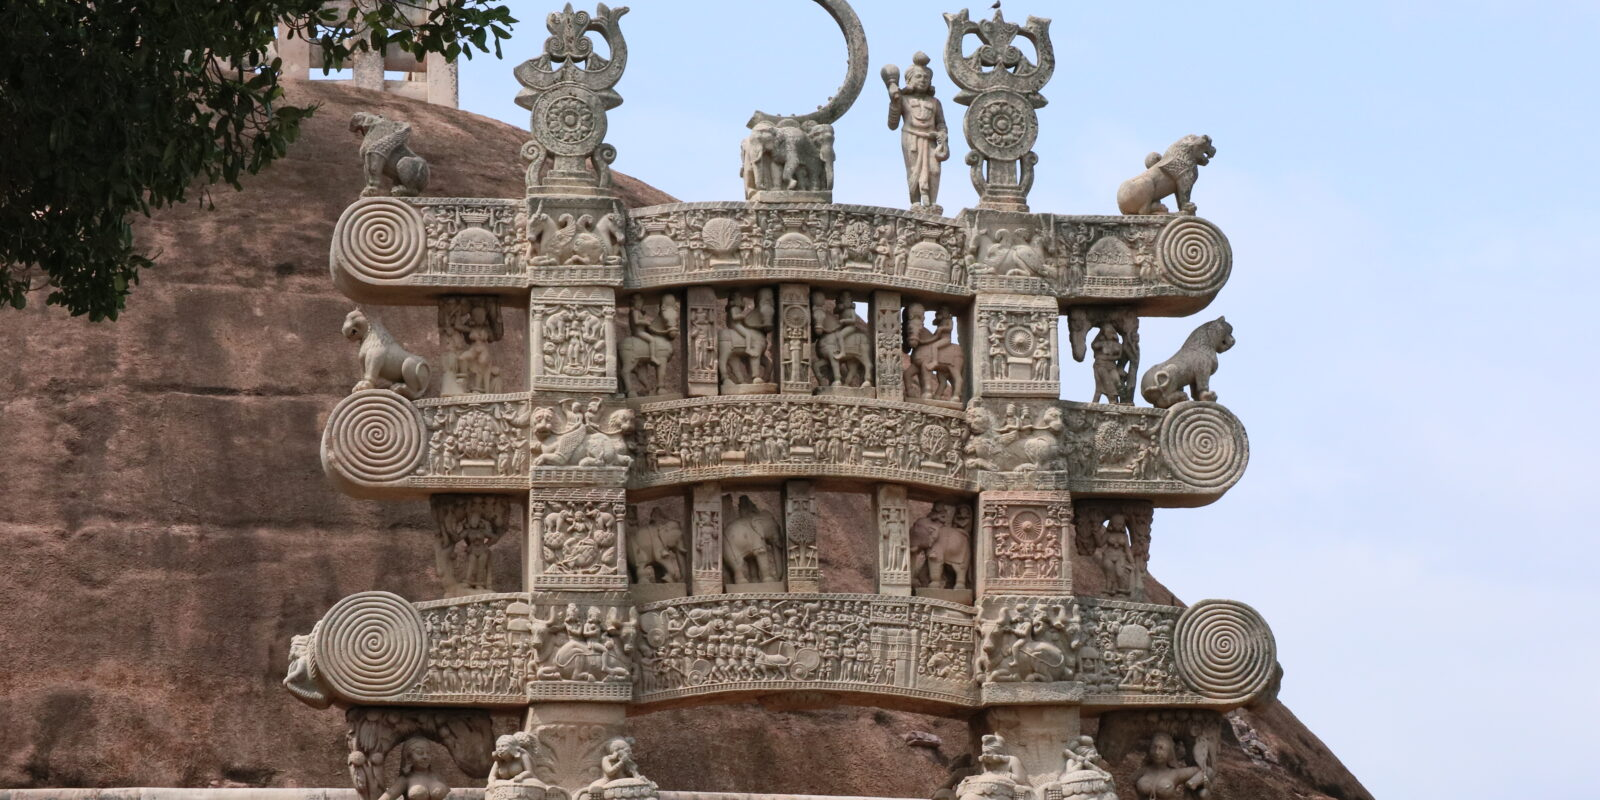 Toran at Sanchi Stupa